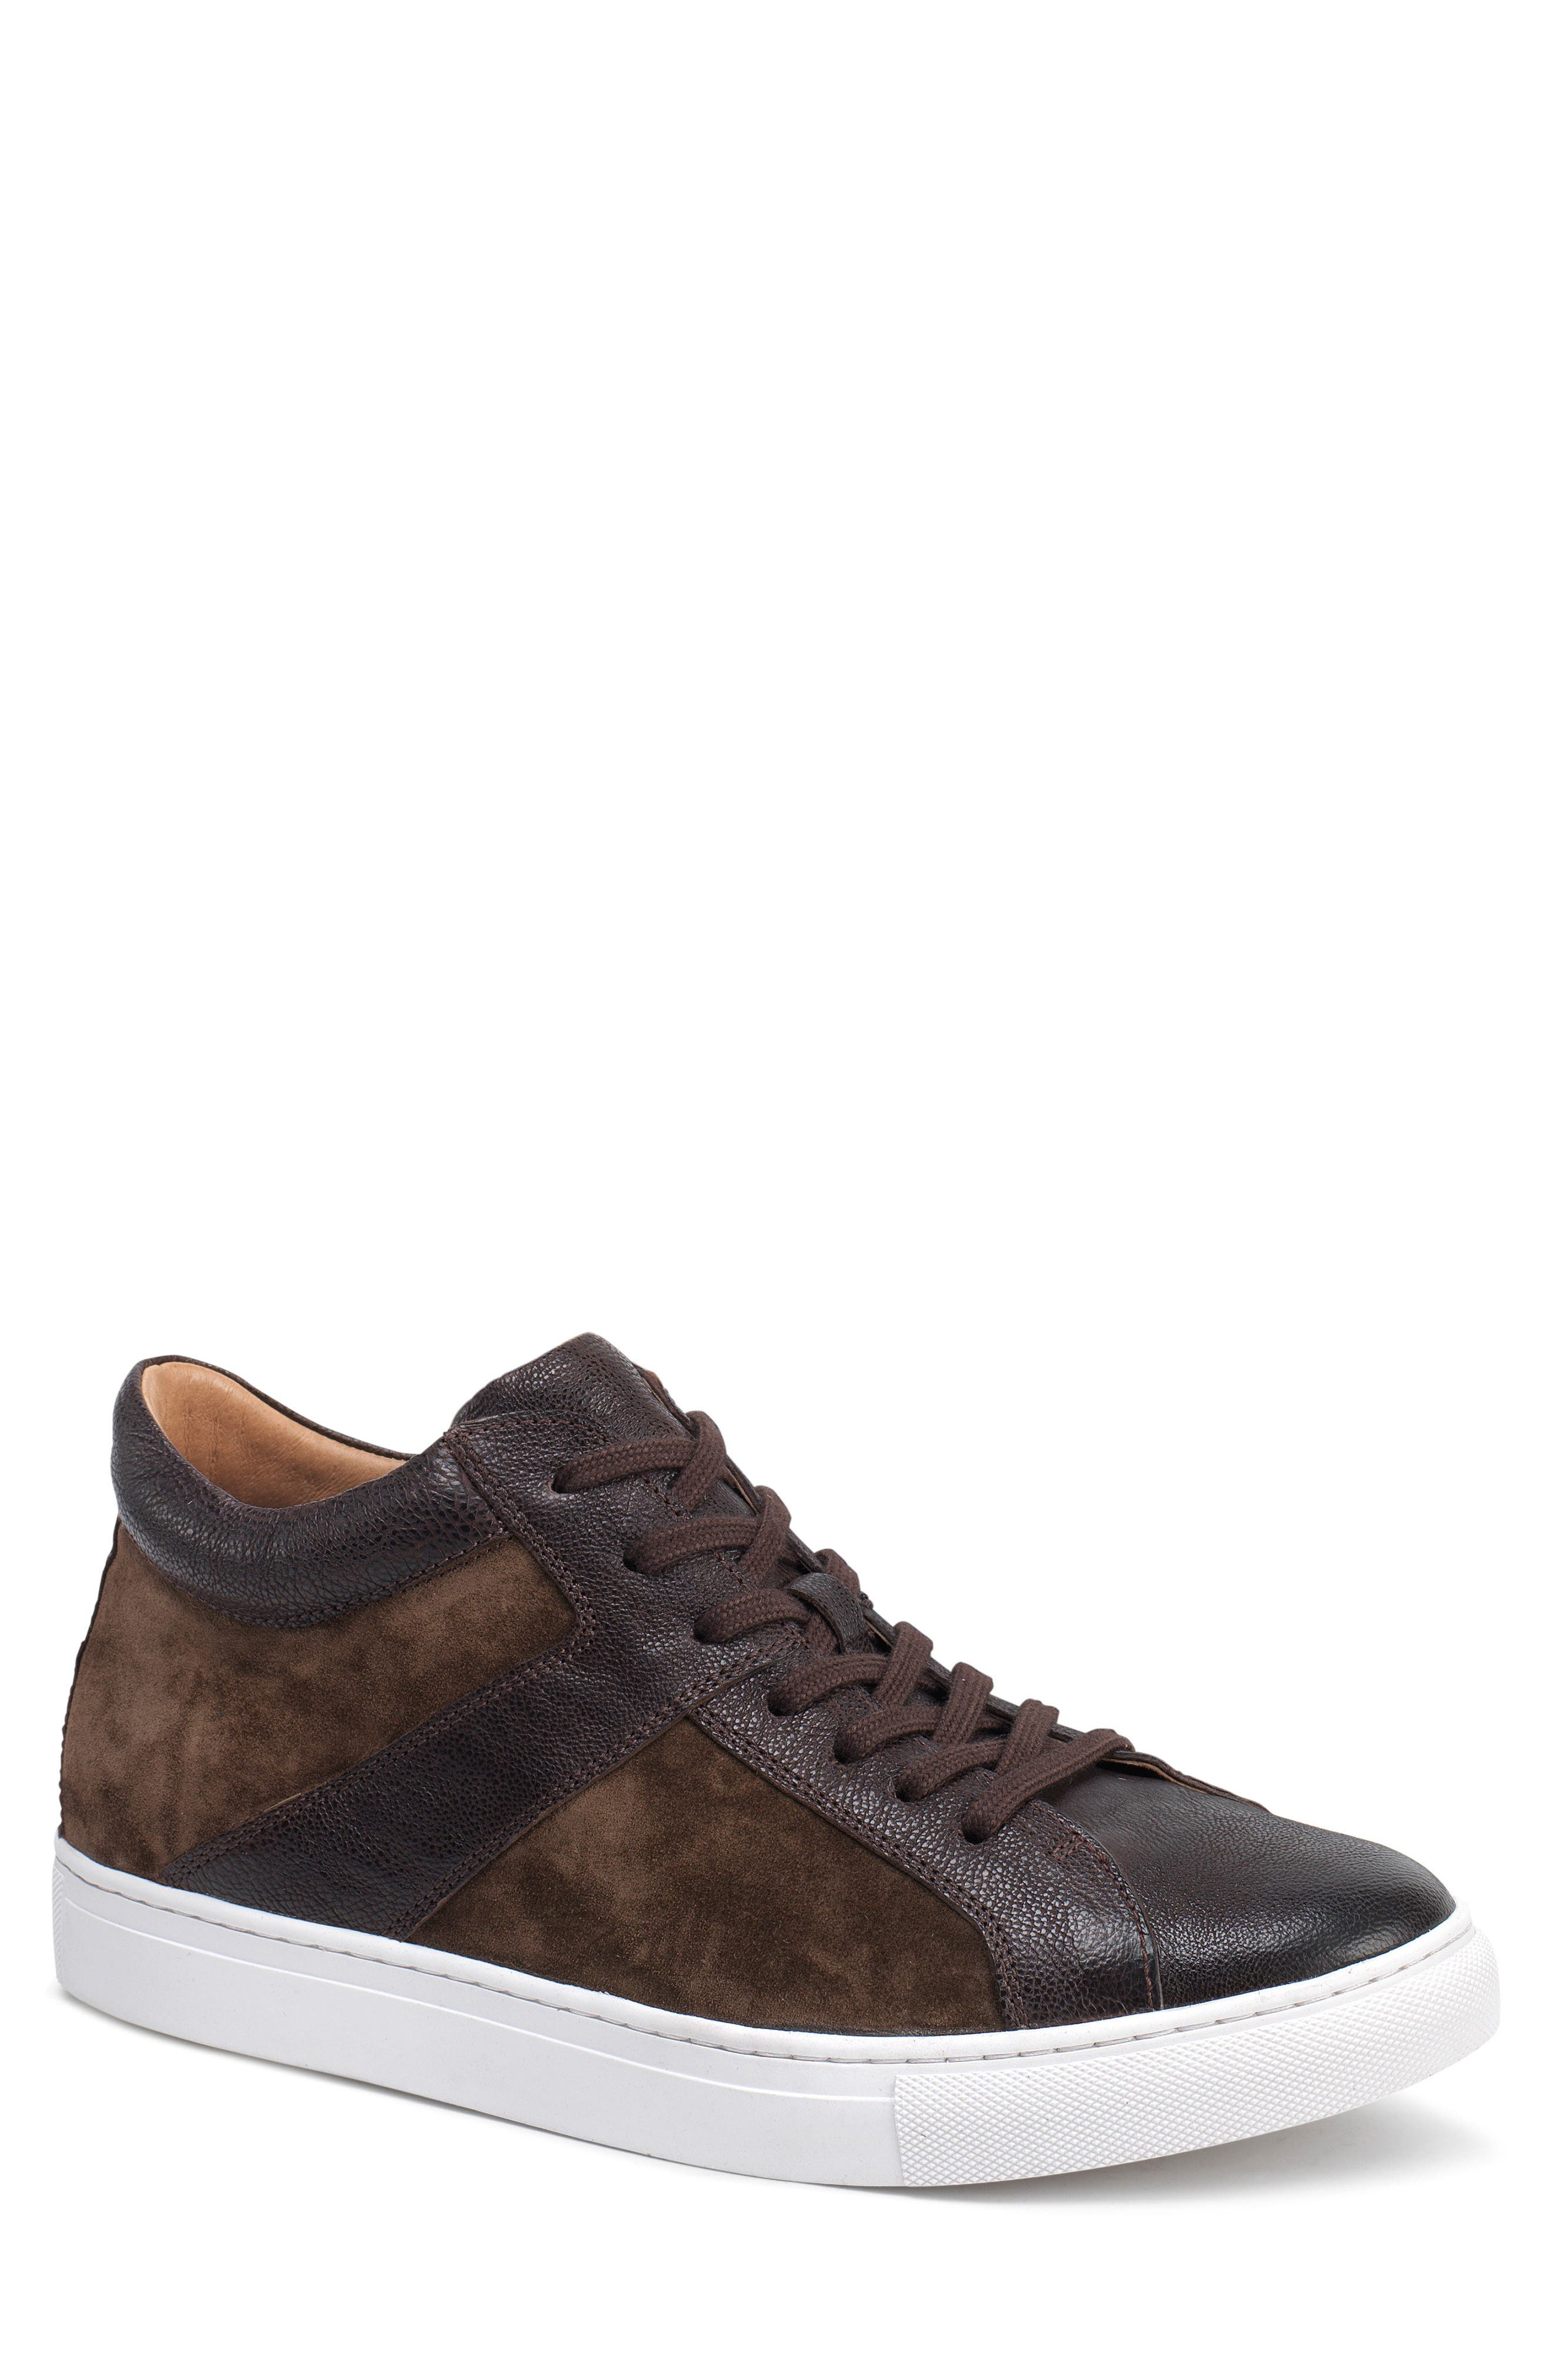 Alec Sneaker,                             Main thumbnail 1, color,                             Dark Brown Leather/Suede